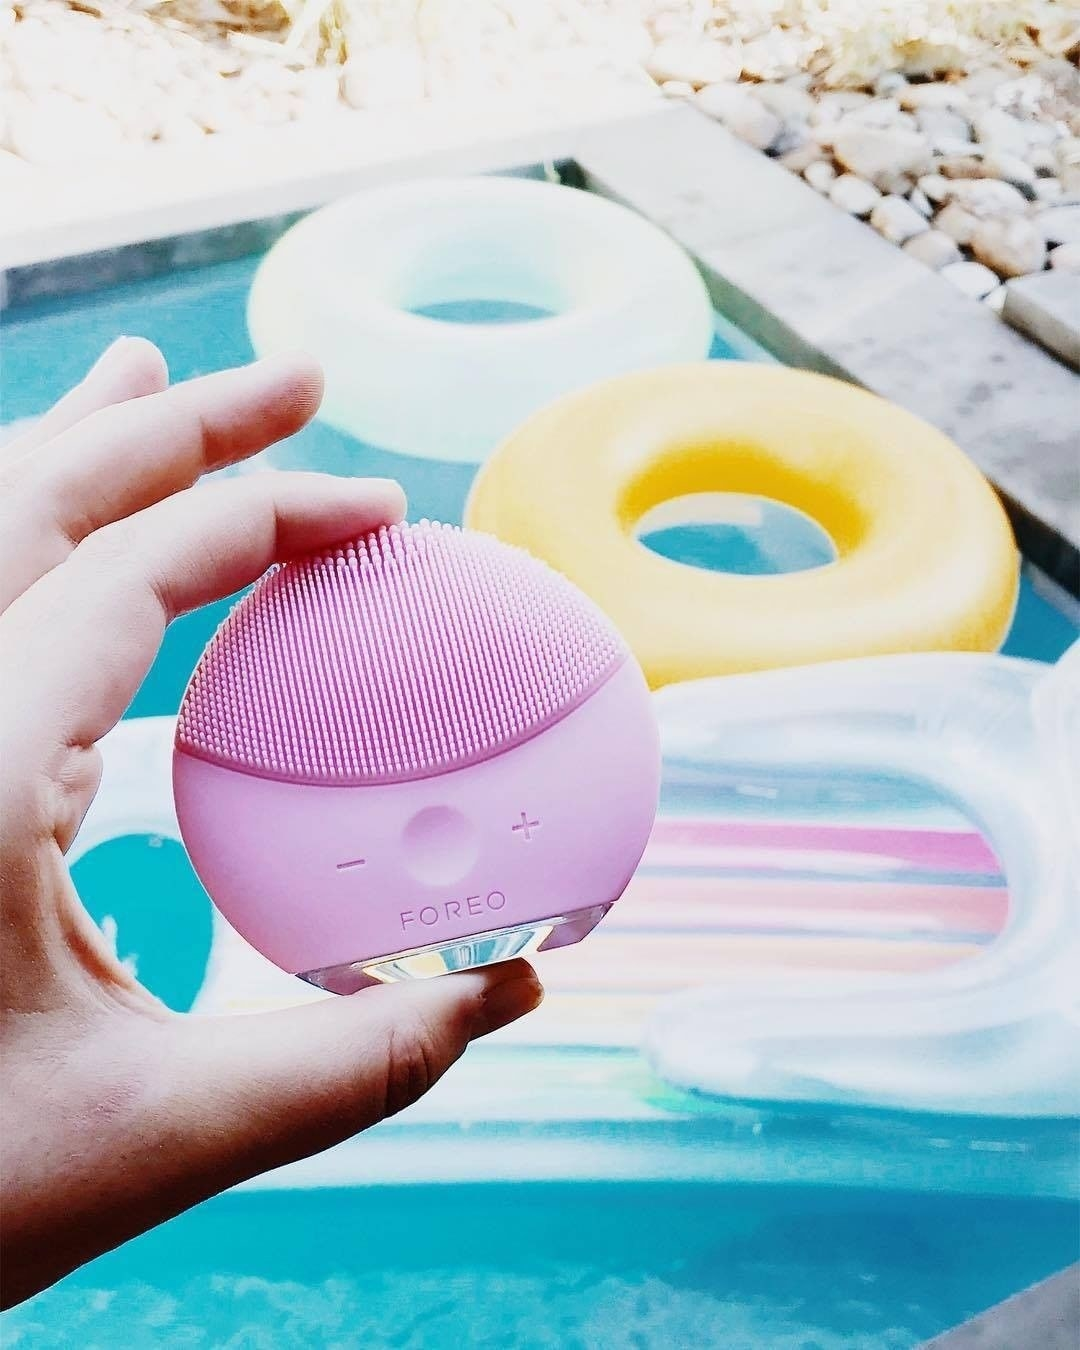 The vibrating face cleansing tool